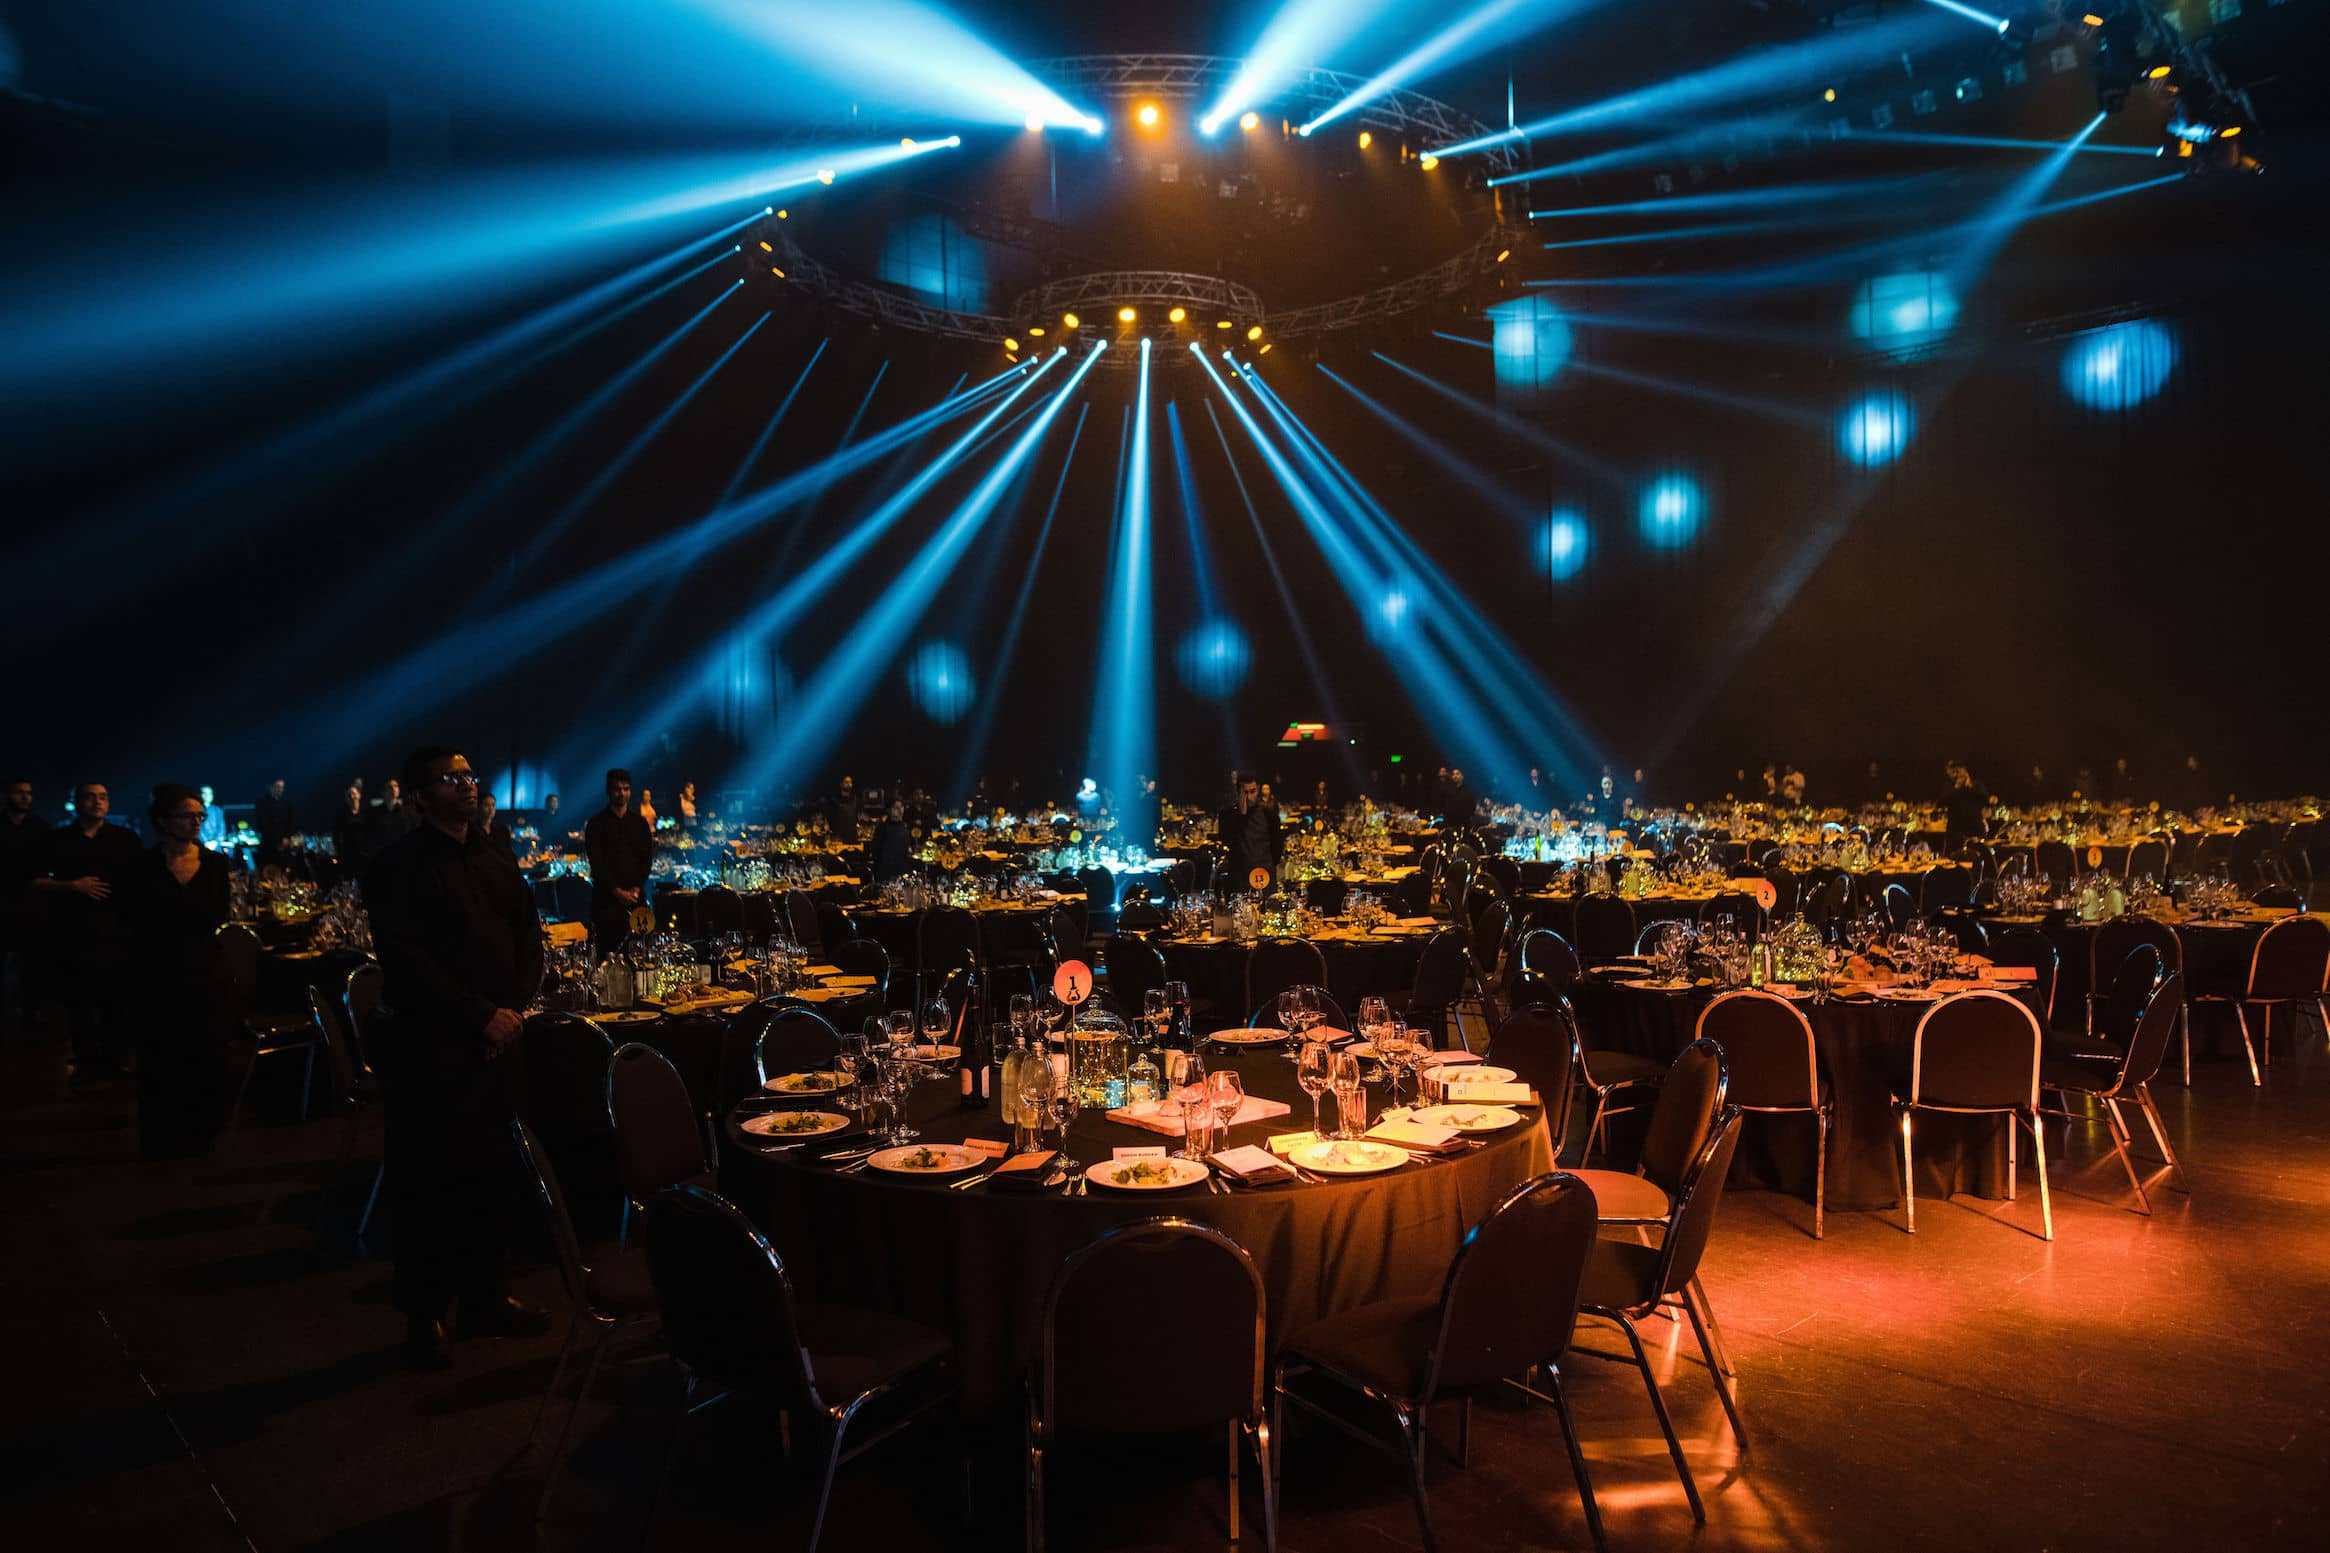 mitre 10 awards 2019, spark arena, awards, auckland